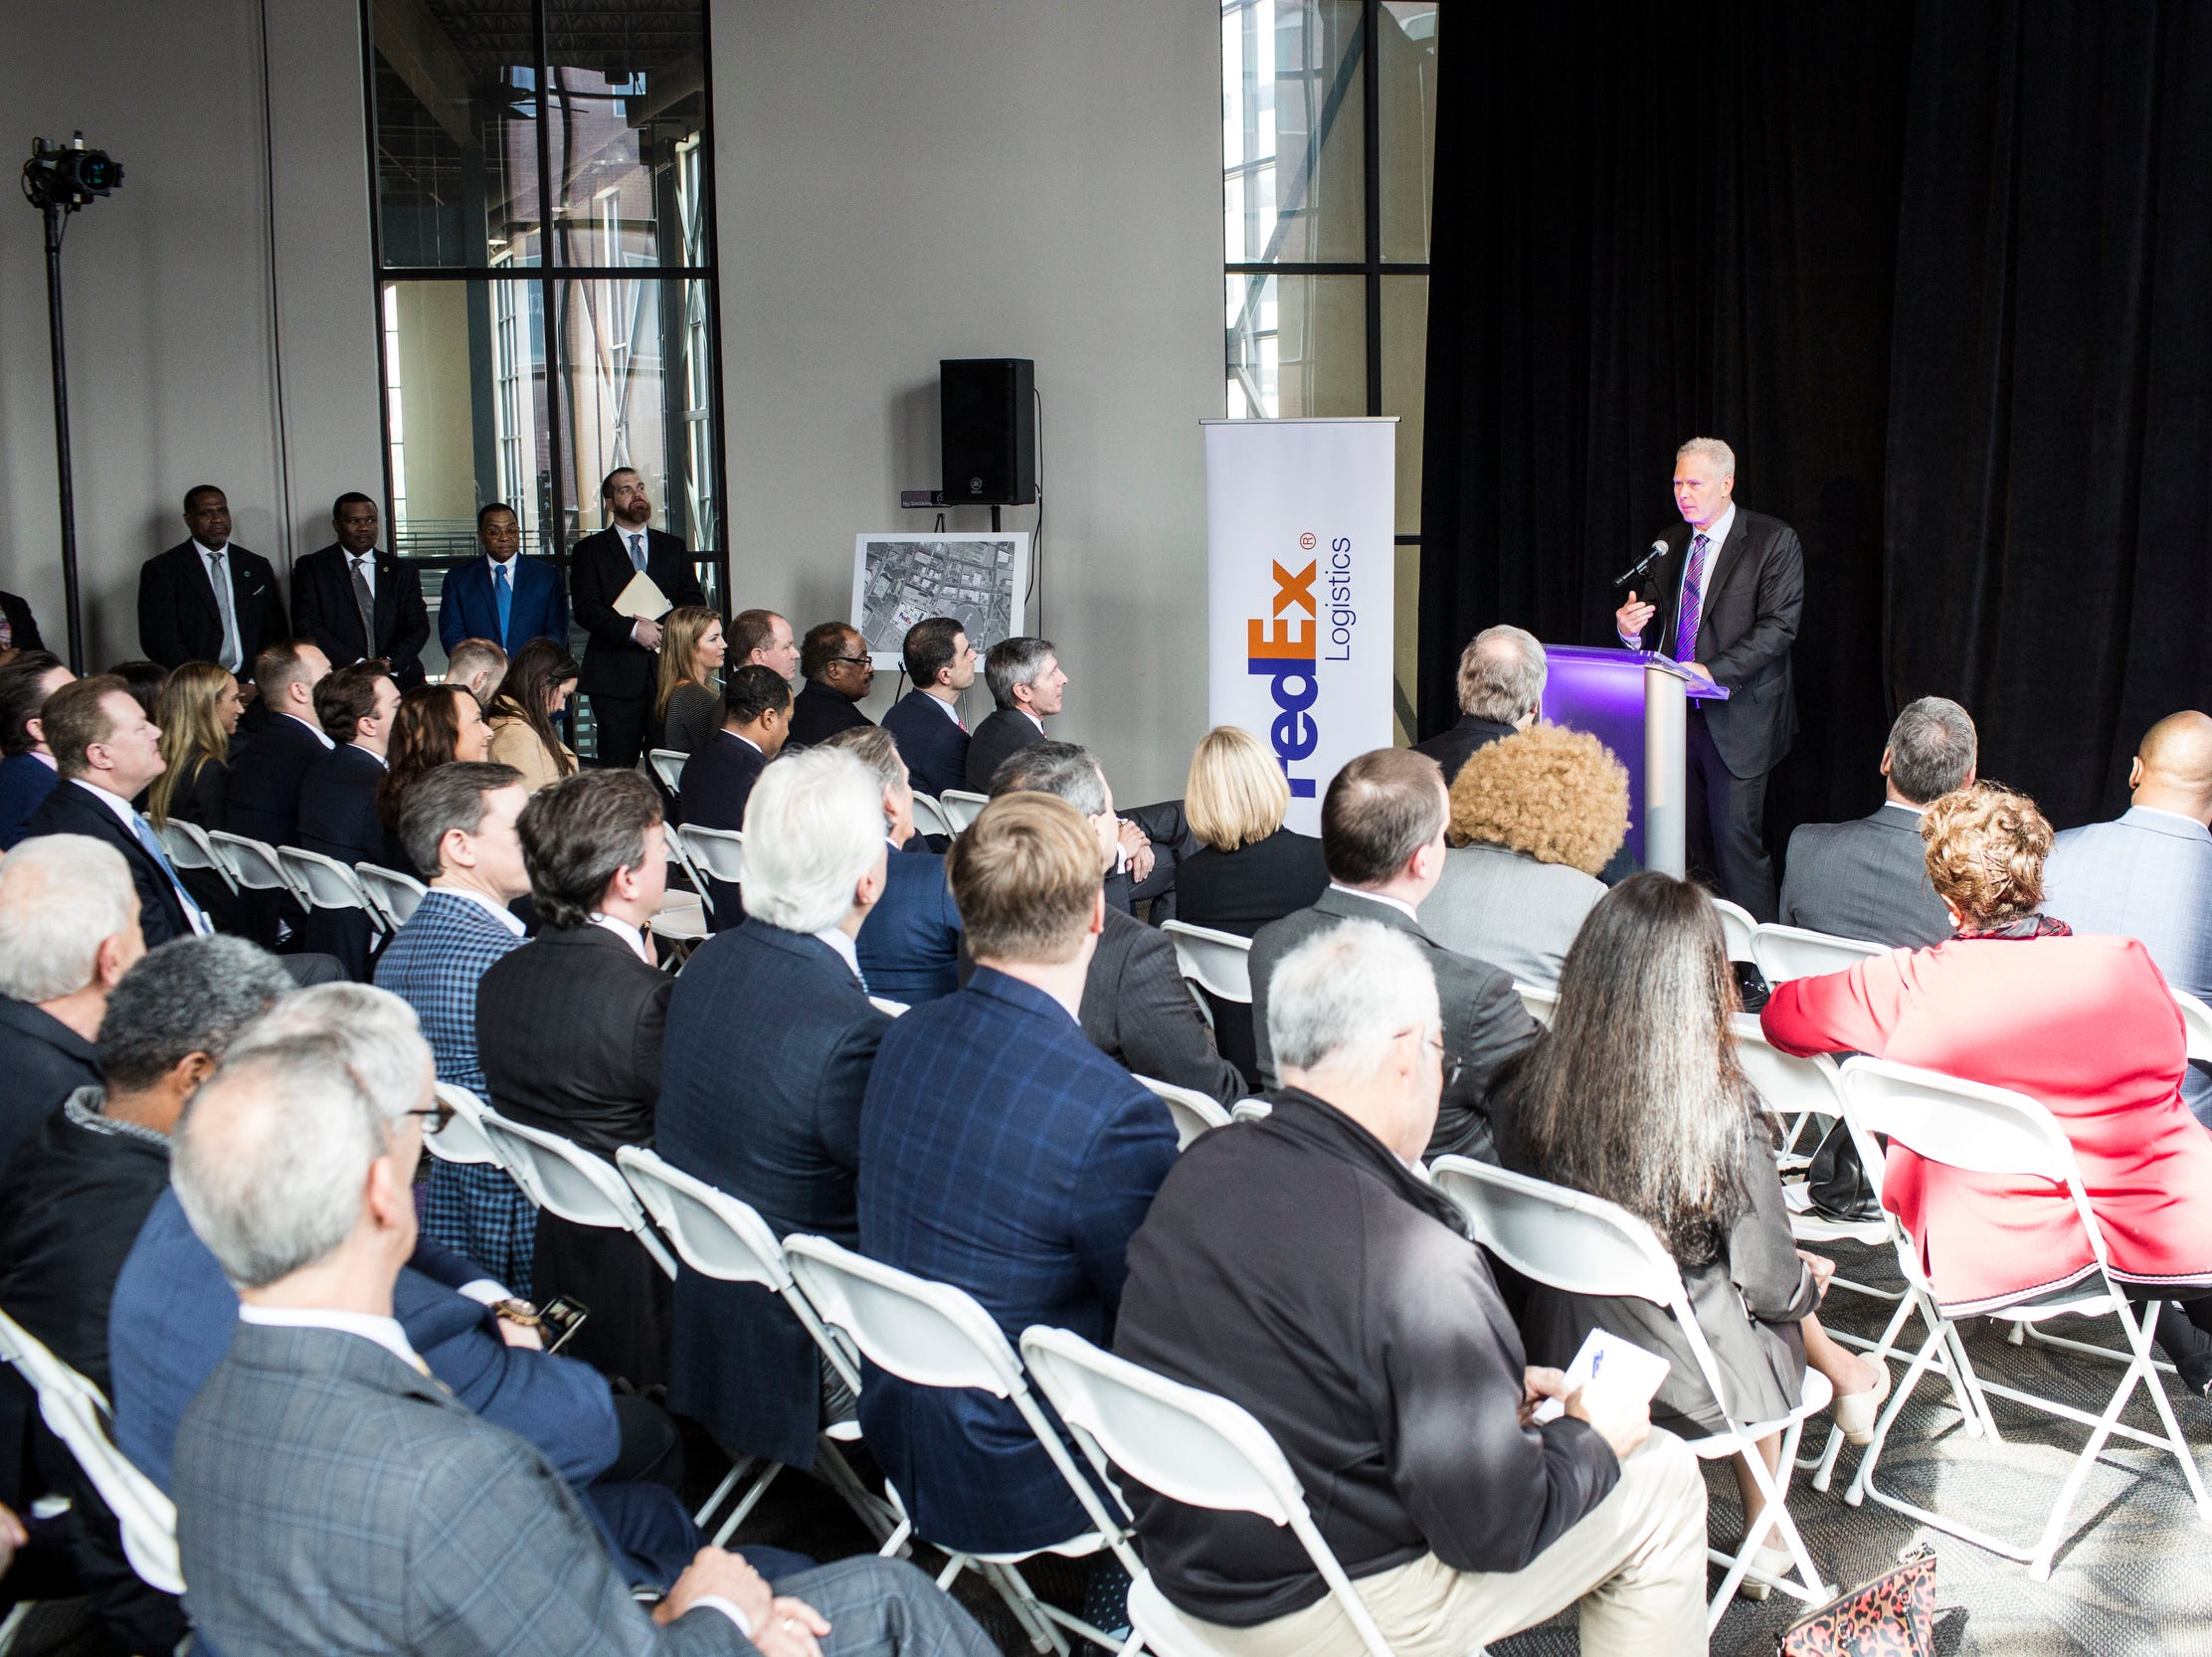 February 12, 2019 - FedEx Logistics CEO Richard Smith speaks during the announcement that FedEx Logistics is relocating to the Gibson Guitar Building. Gov. Bill Lee and local officials made the announcement Tuesday at the former guitar factory off Beale Street. This is Lee's first economic development announcement since taking office.